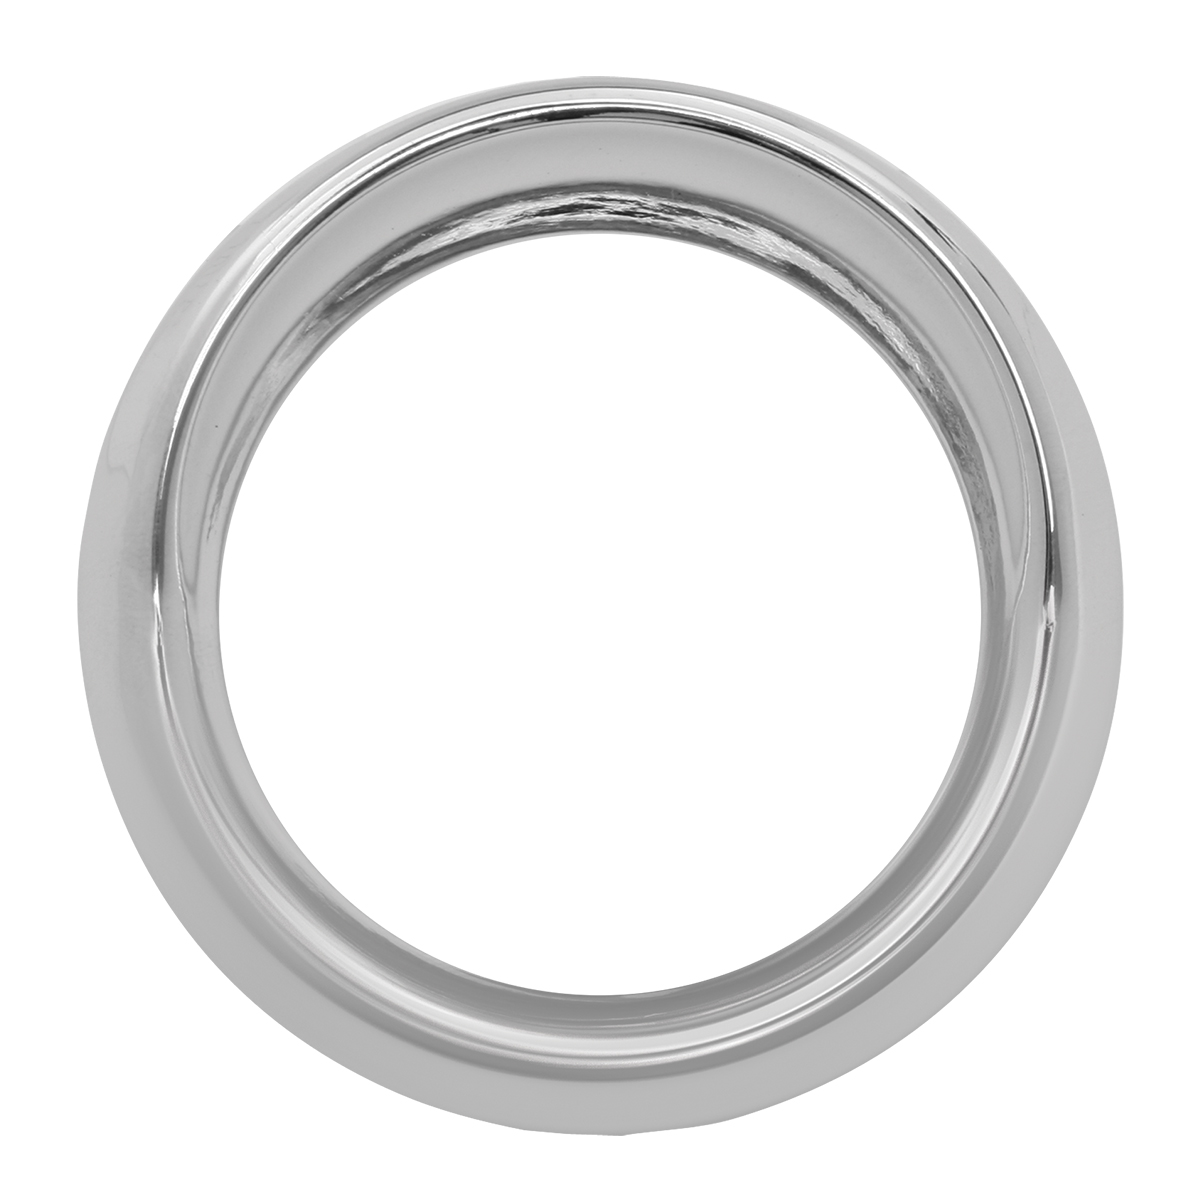 68165 Chrome Plastic Small Snap-On Gauge Cover for Pete